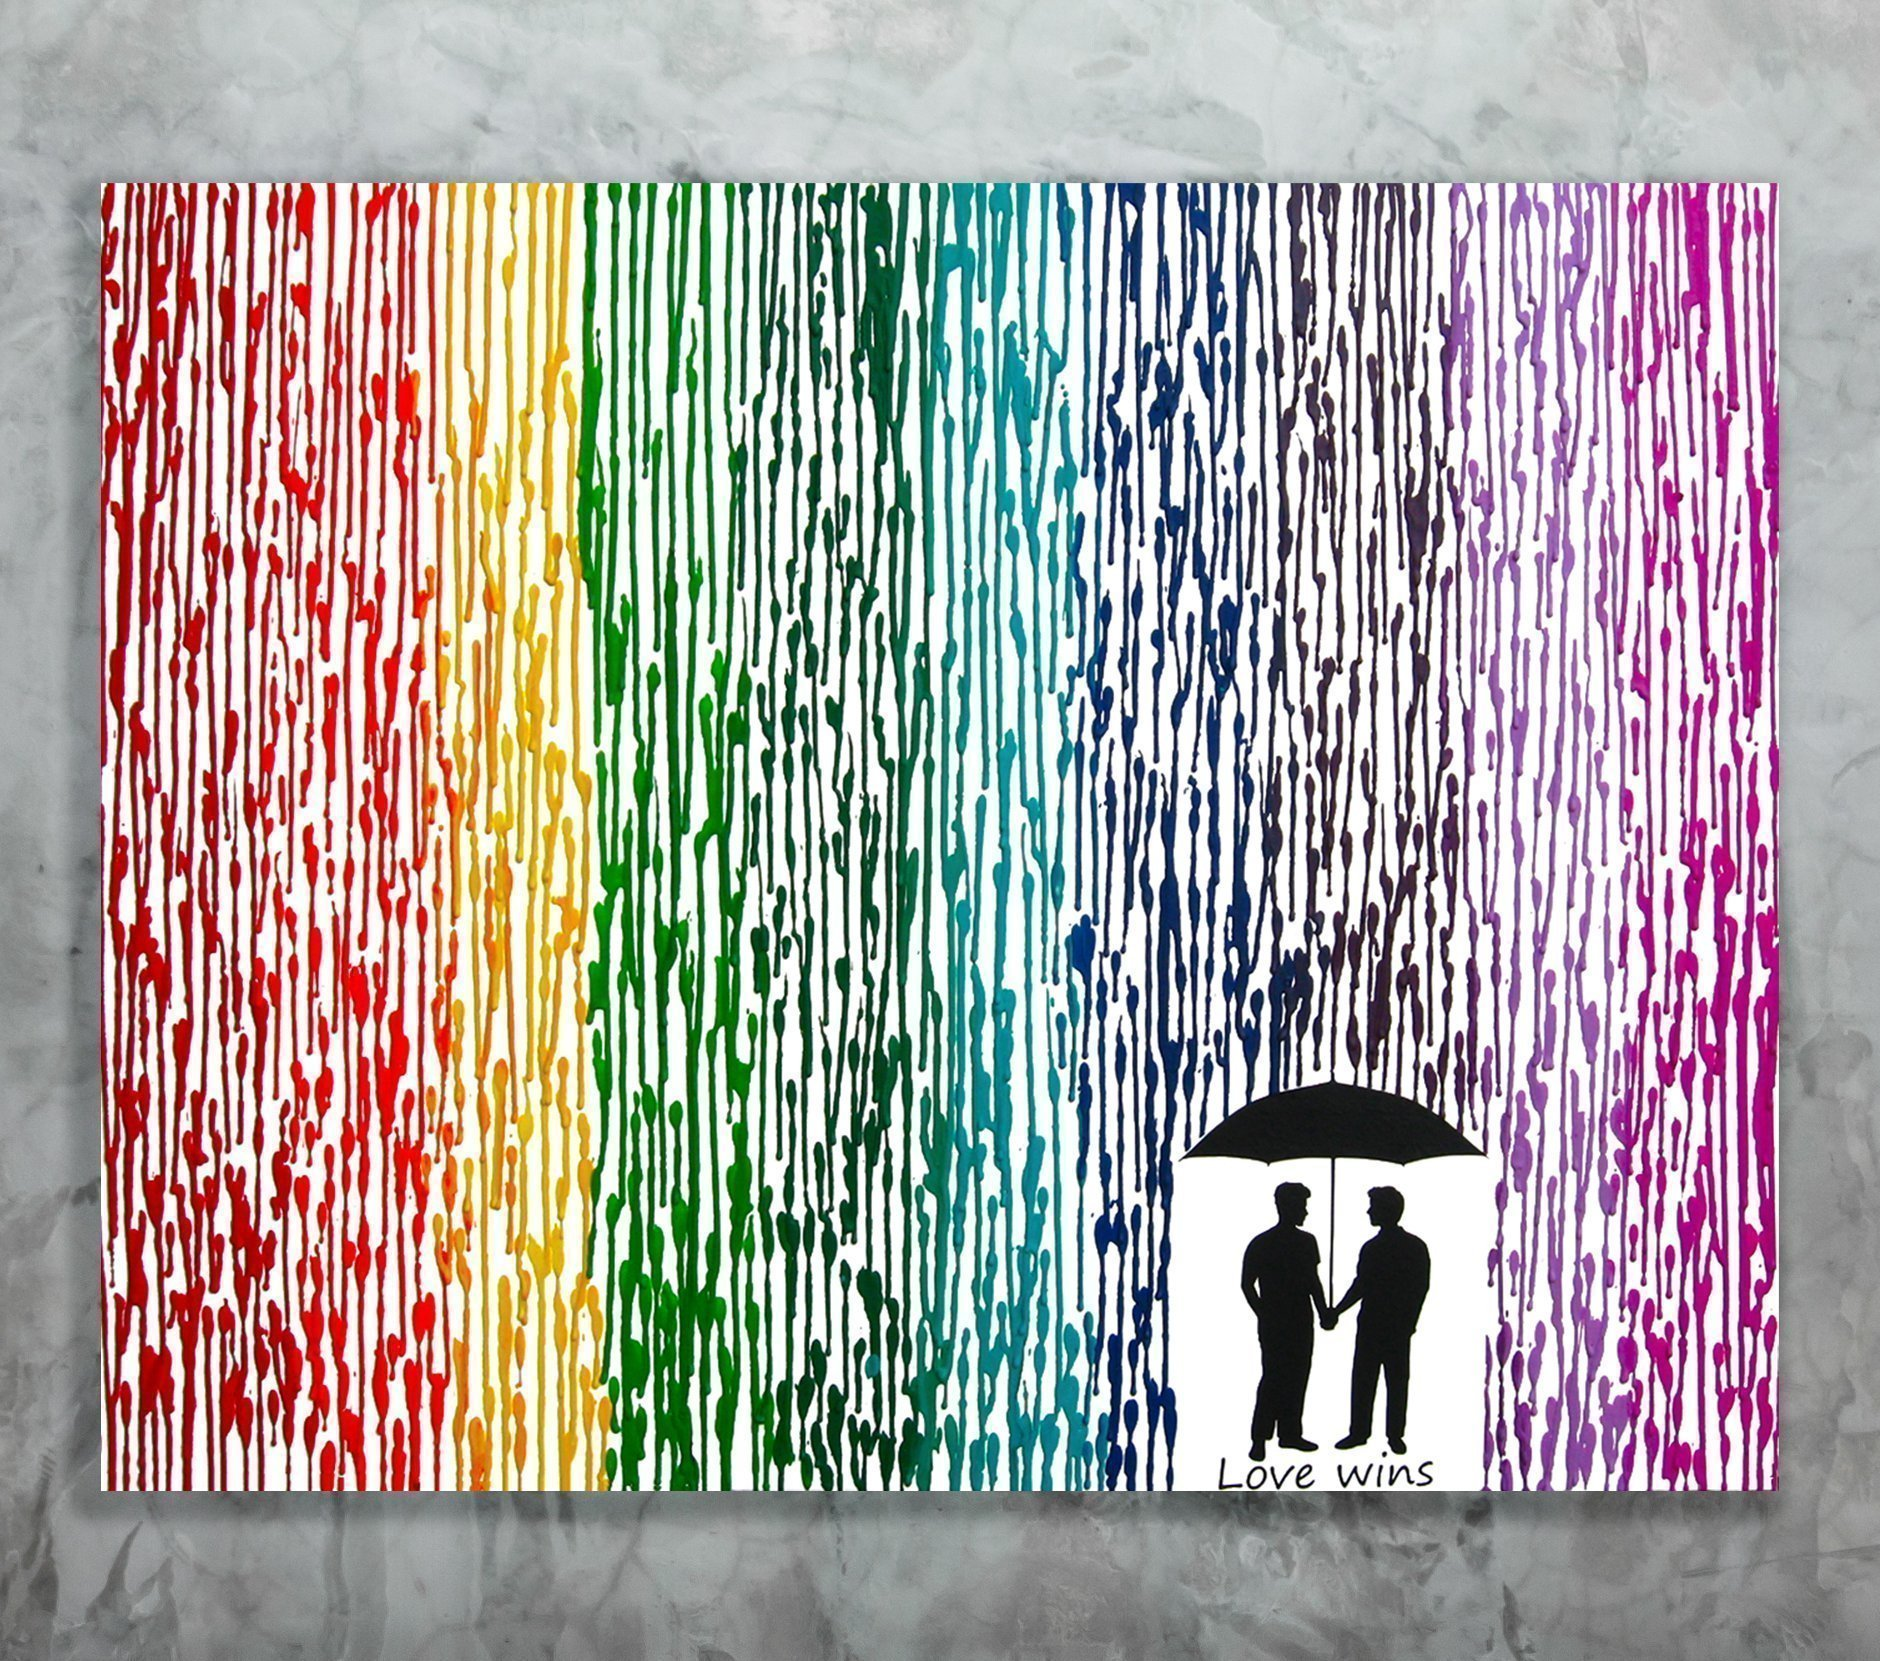 Gay Wedding Gift, 22x28 Melted Crayon Art Canvas Painting, Love Wins